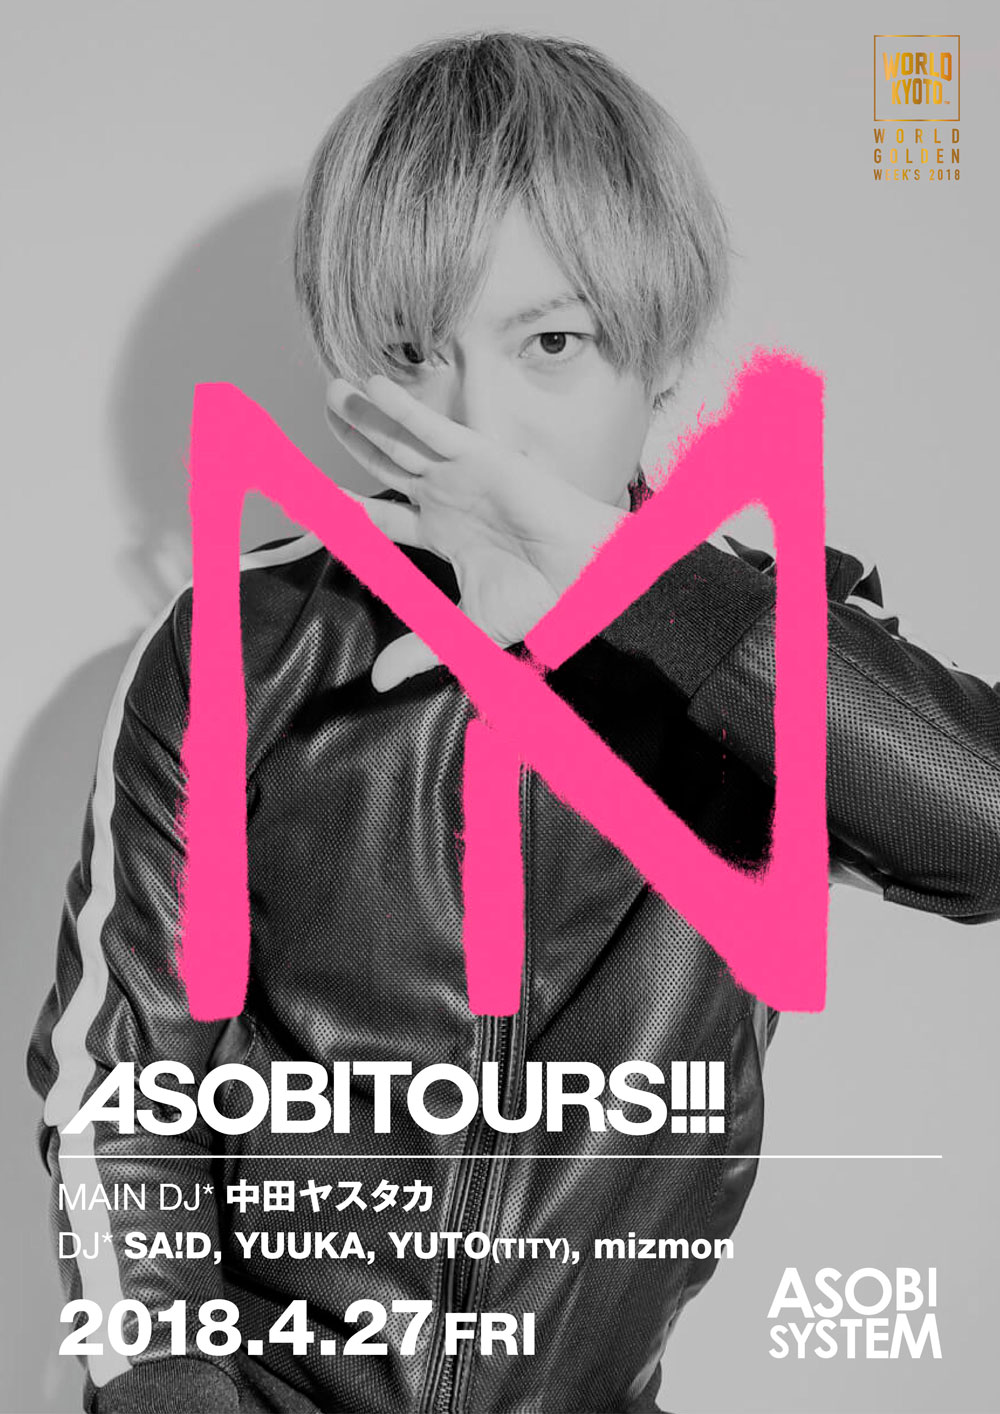 ASOBITOURS!!! in KYOTO